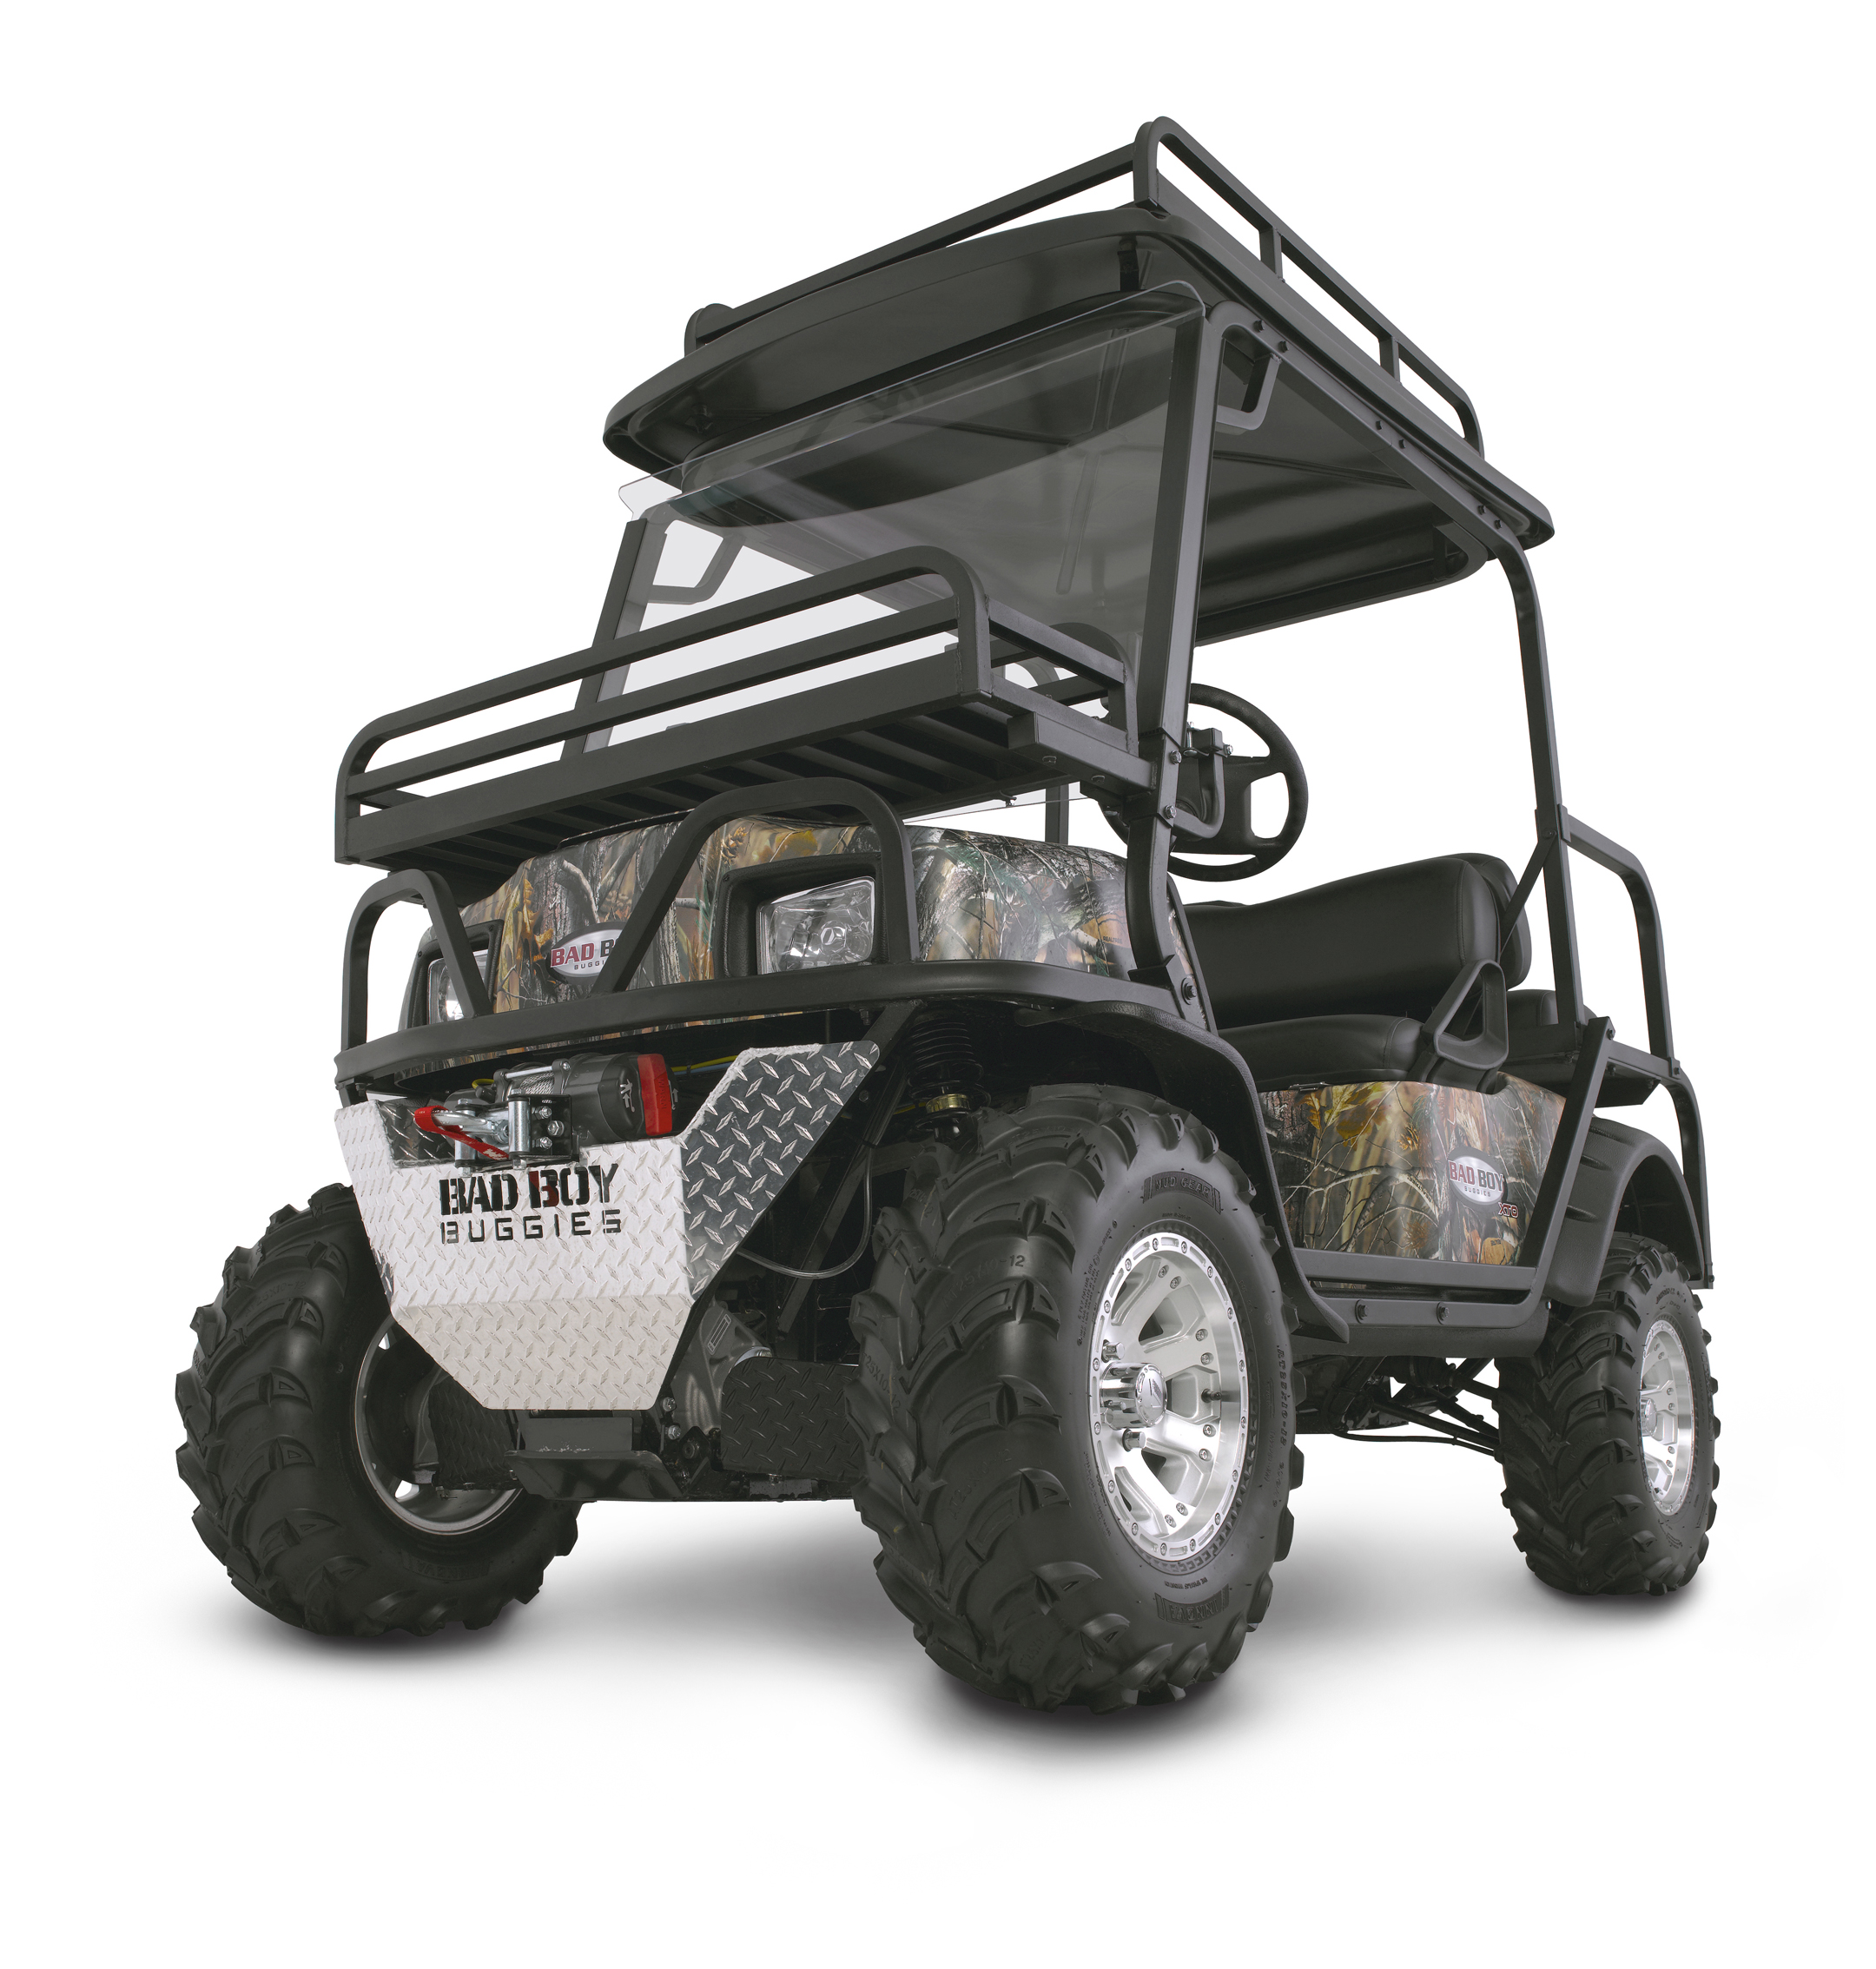 Bad Boy Xto Off Road Utility Vehicle